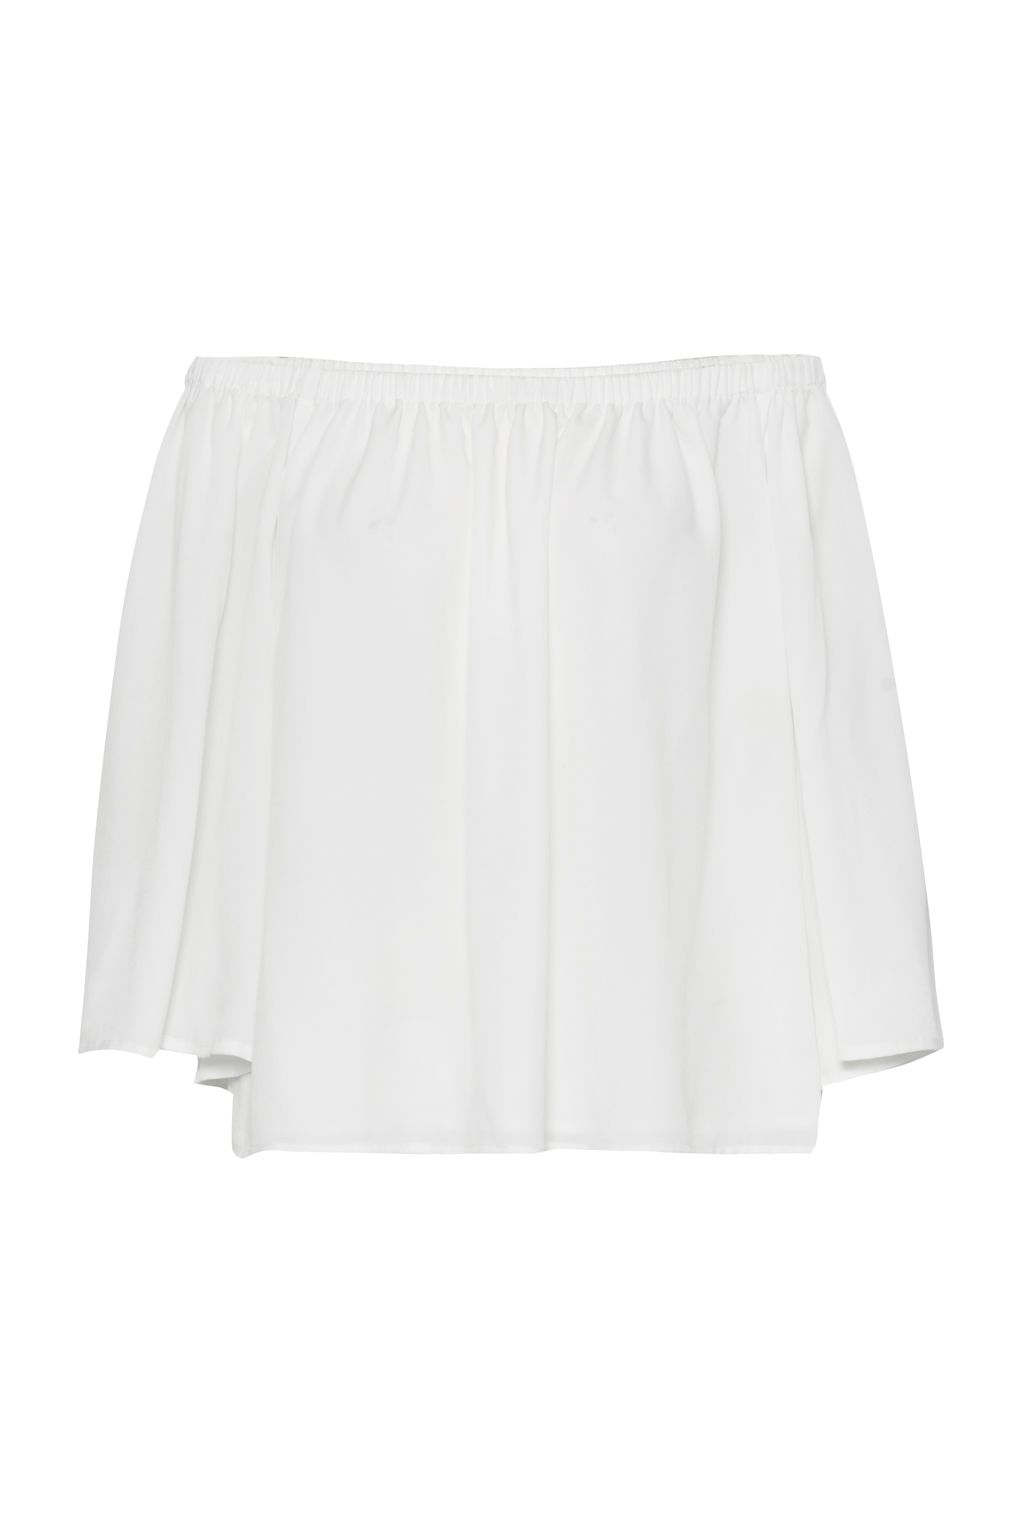 French Connection Summer Light Crepe Off The Shoulder Top, White